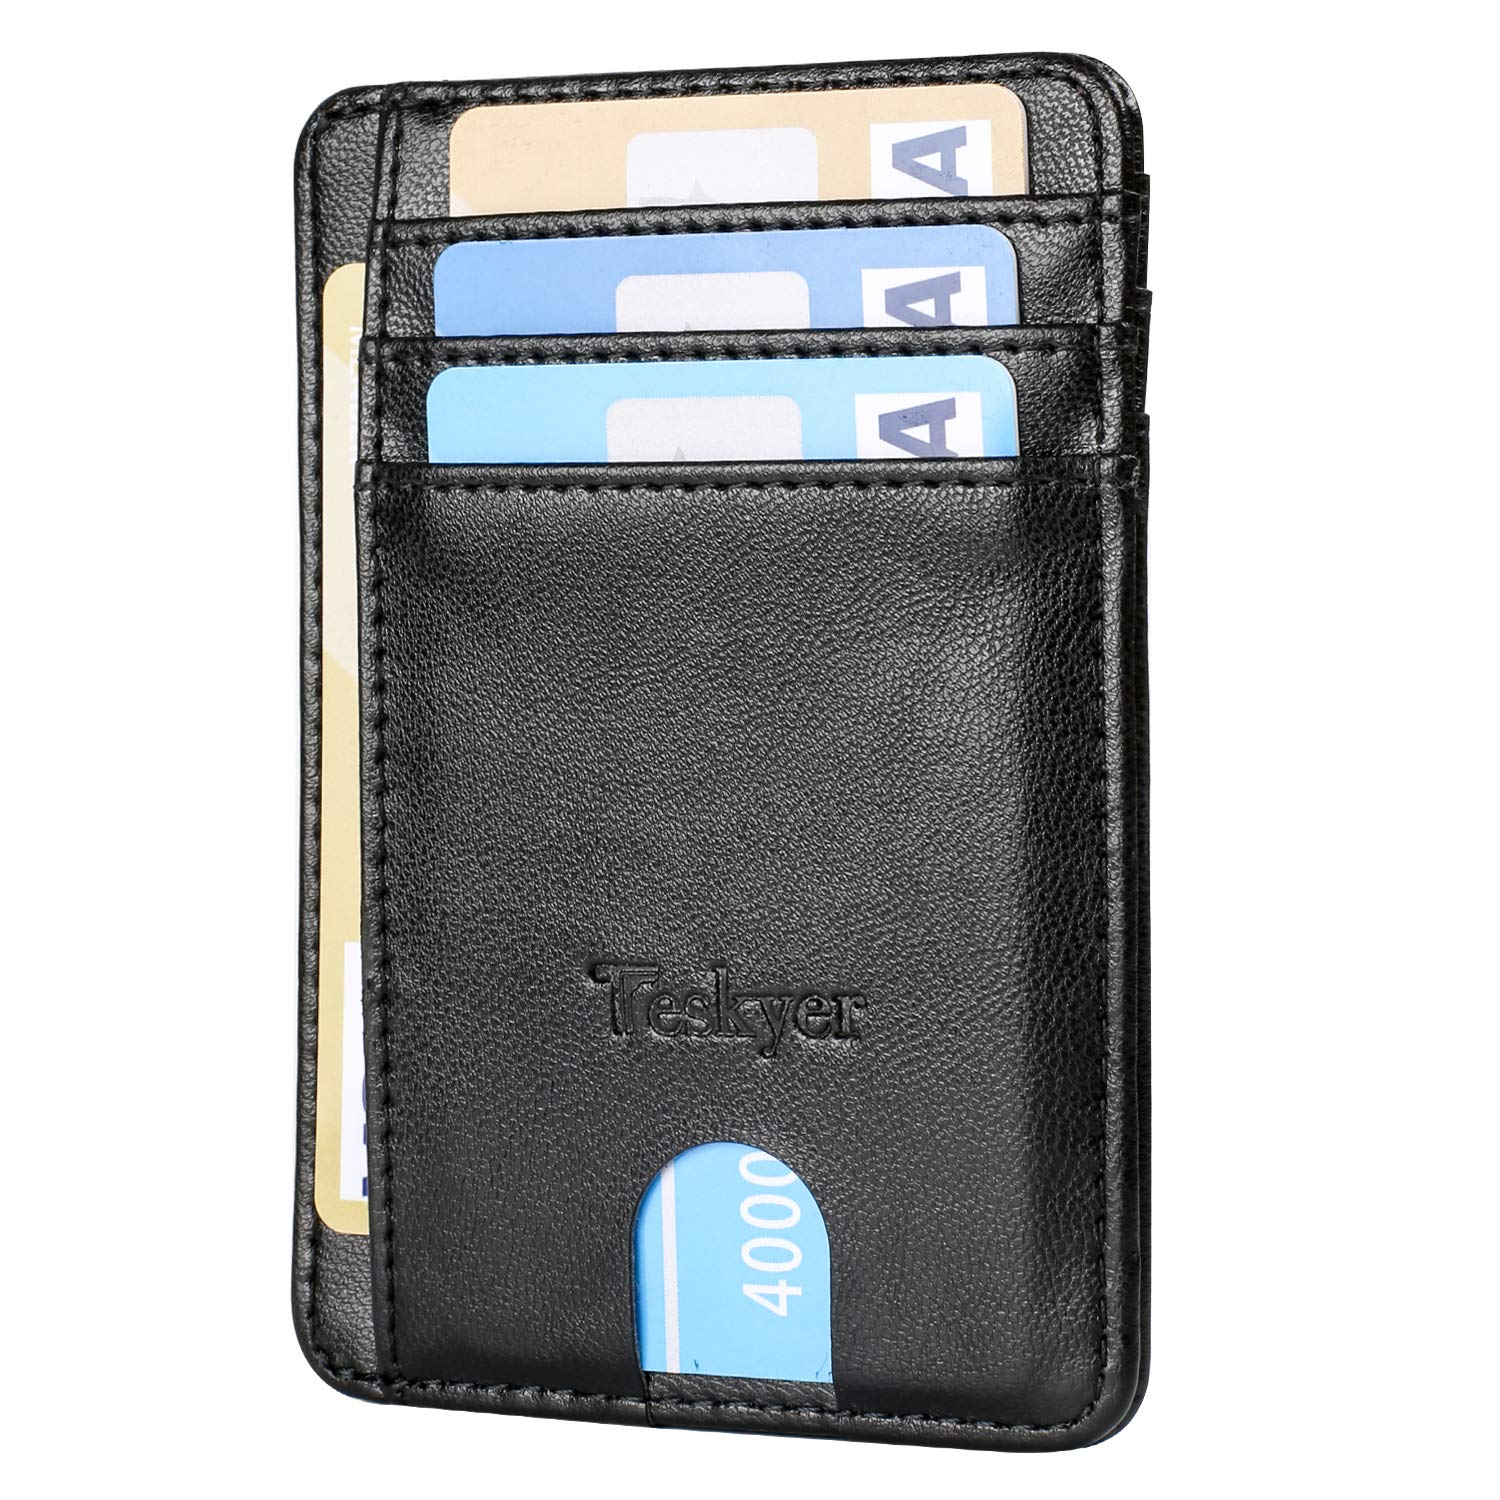 Teskyer Slim Minimalist Wallet RFID Blocking Credit Card Holder Front Pocket Leather ID Wallet Case for Men Women